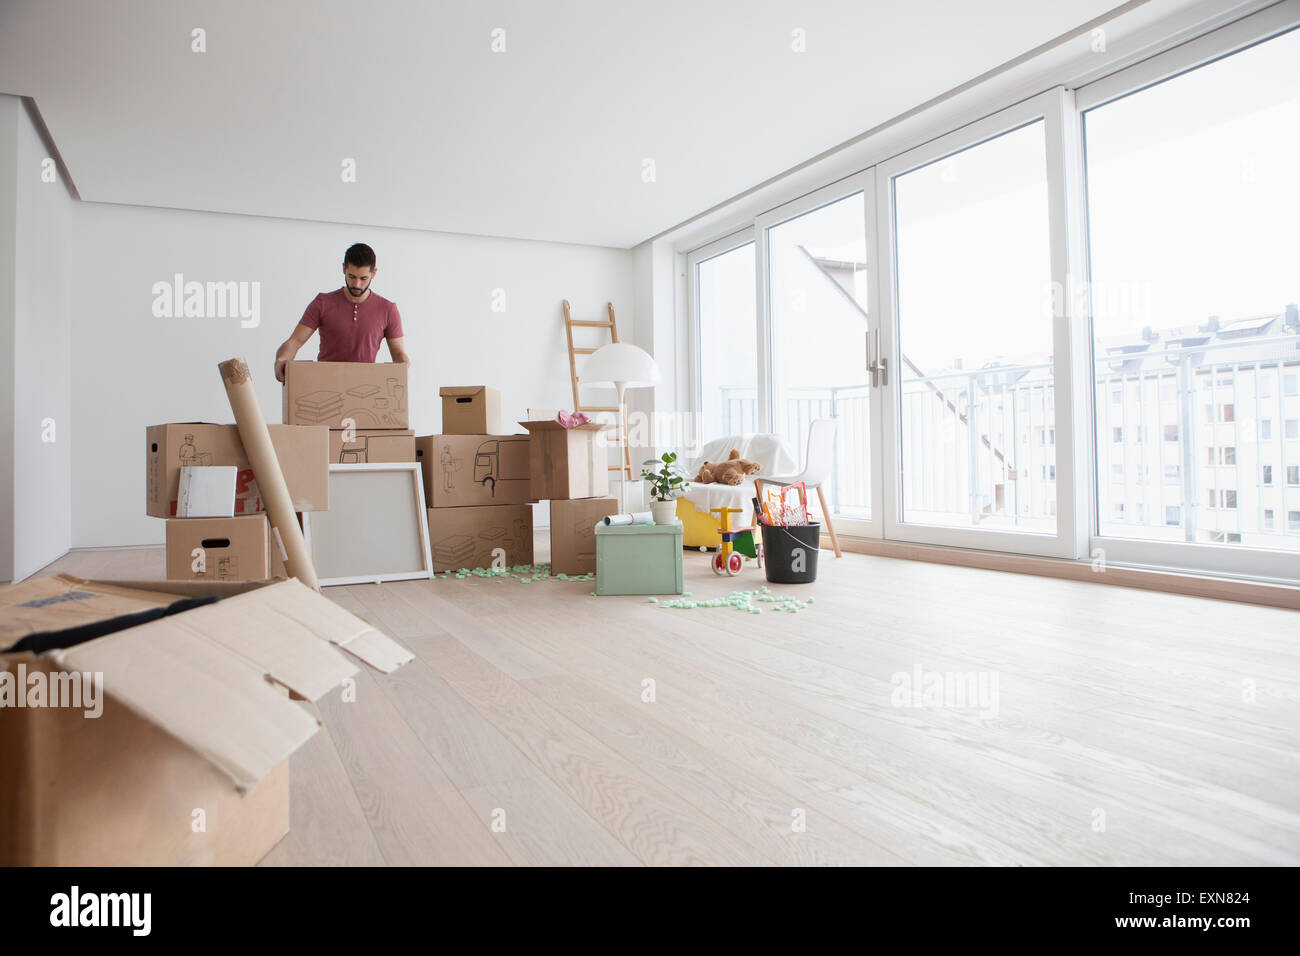 Young man in new flat unpacking cardboard boxes - Stock Image